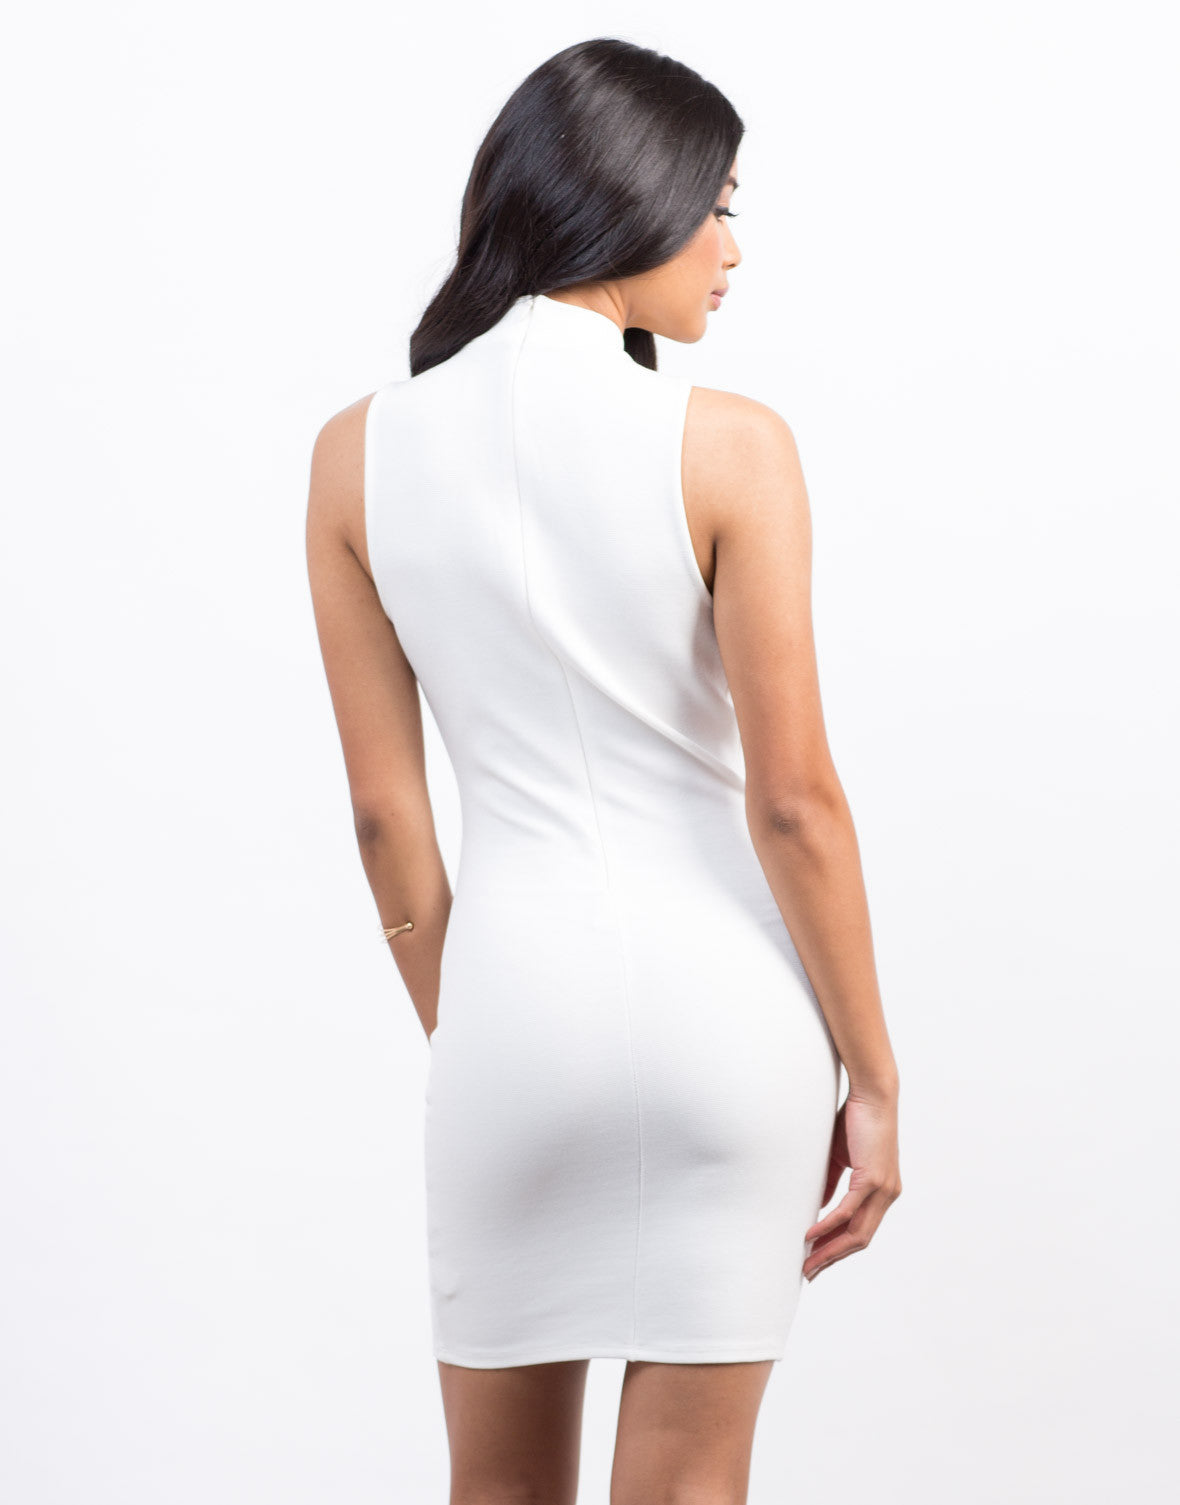 Back View of Plunging Cut Out Dress